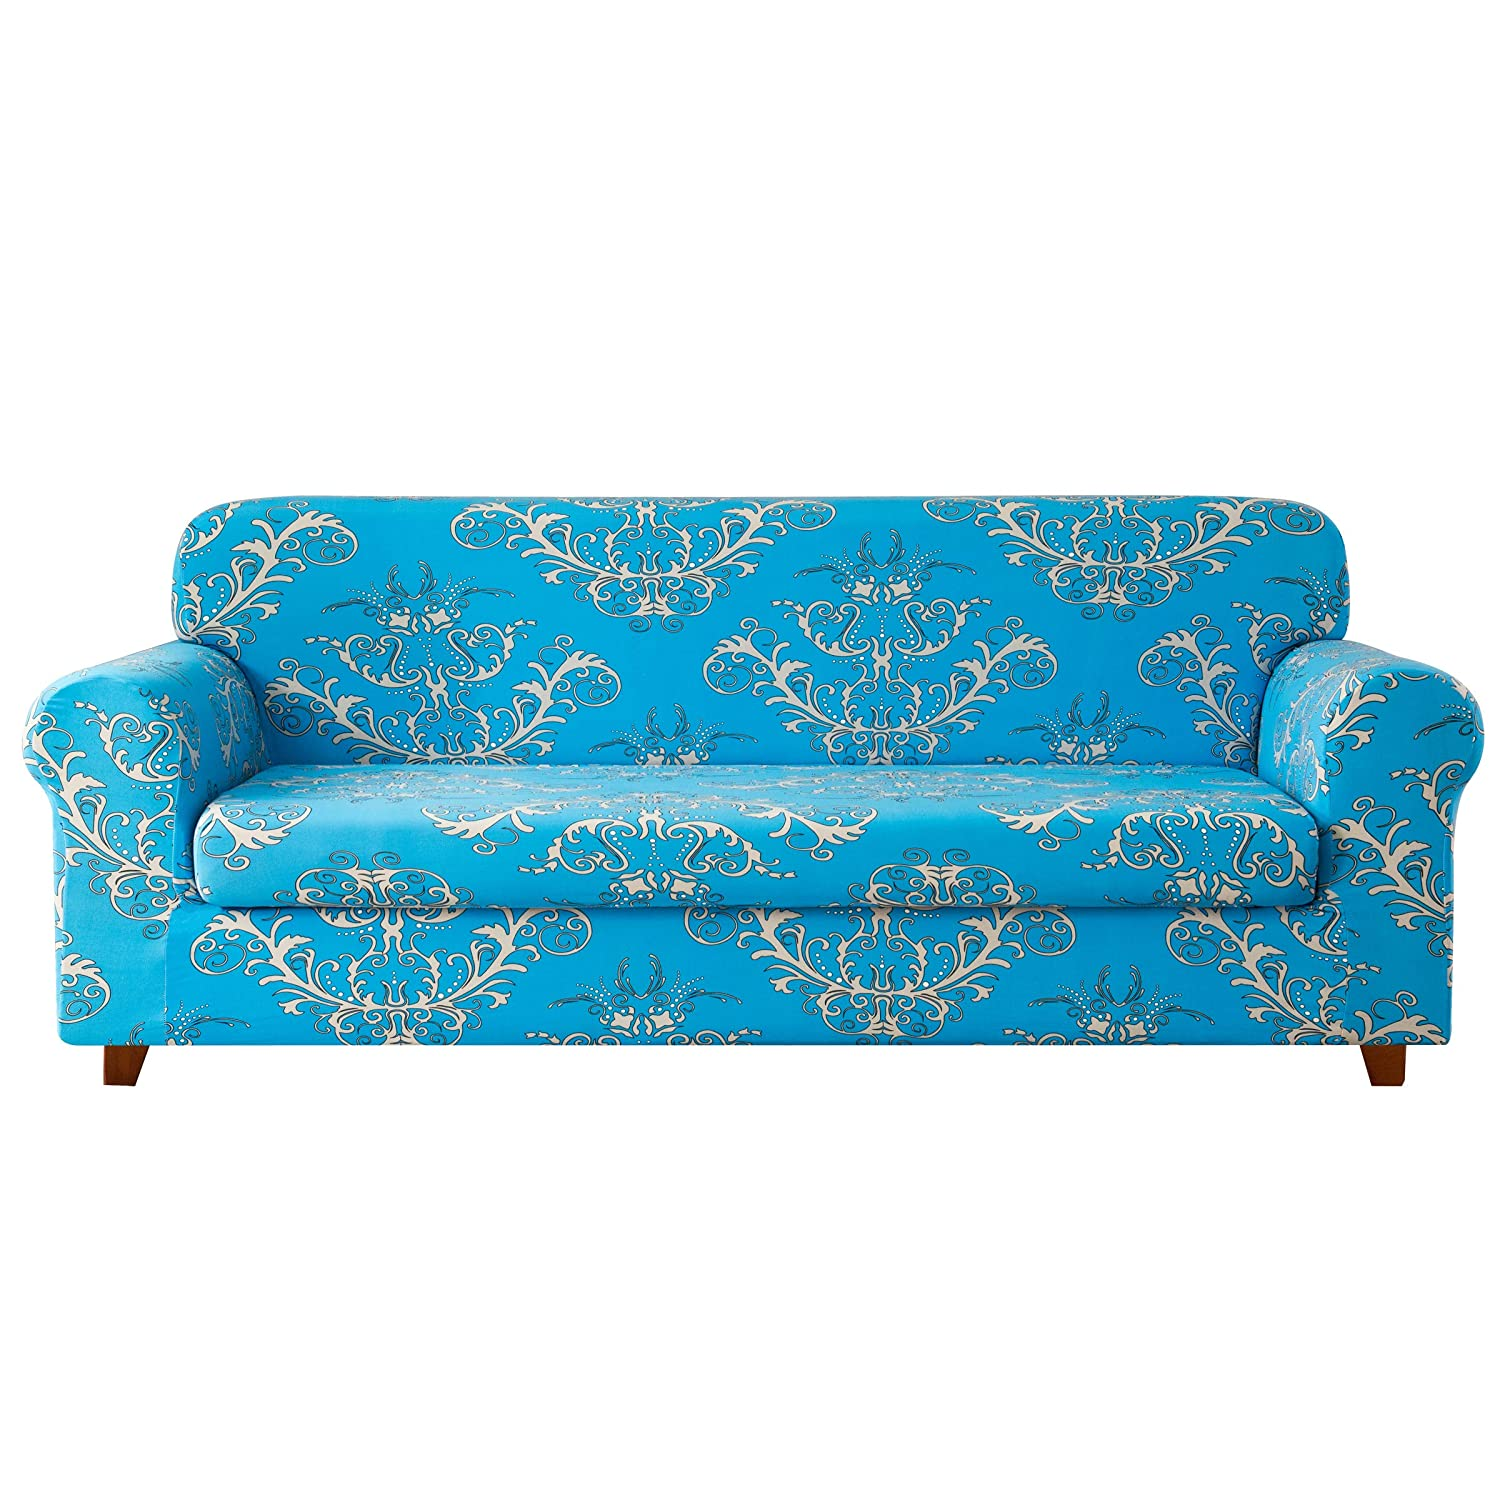 Tremendous Tikami 2 Piece Sofa Slipcovers Floral Patterned Stretch Loveseat Covers Washable Couch Protector For Living Room Loveseat Blue Ibusinesslaw Wood Chair Design Ideas Ibusinesslaworg